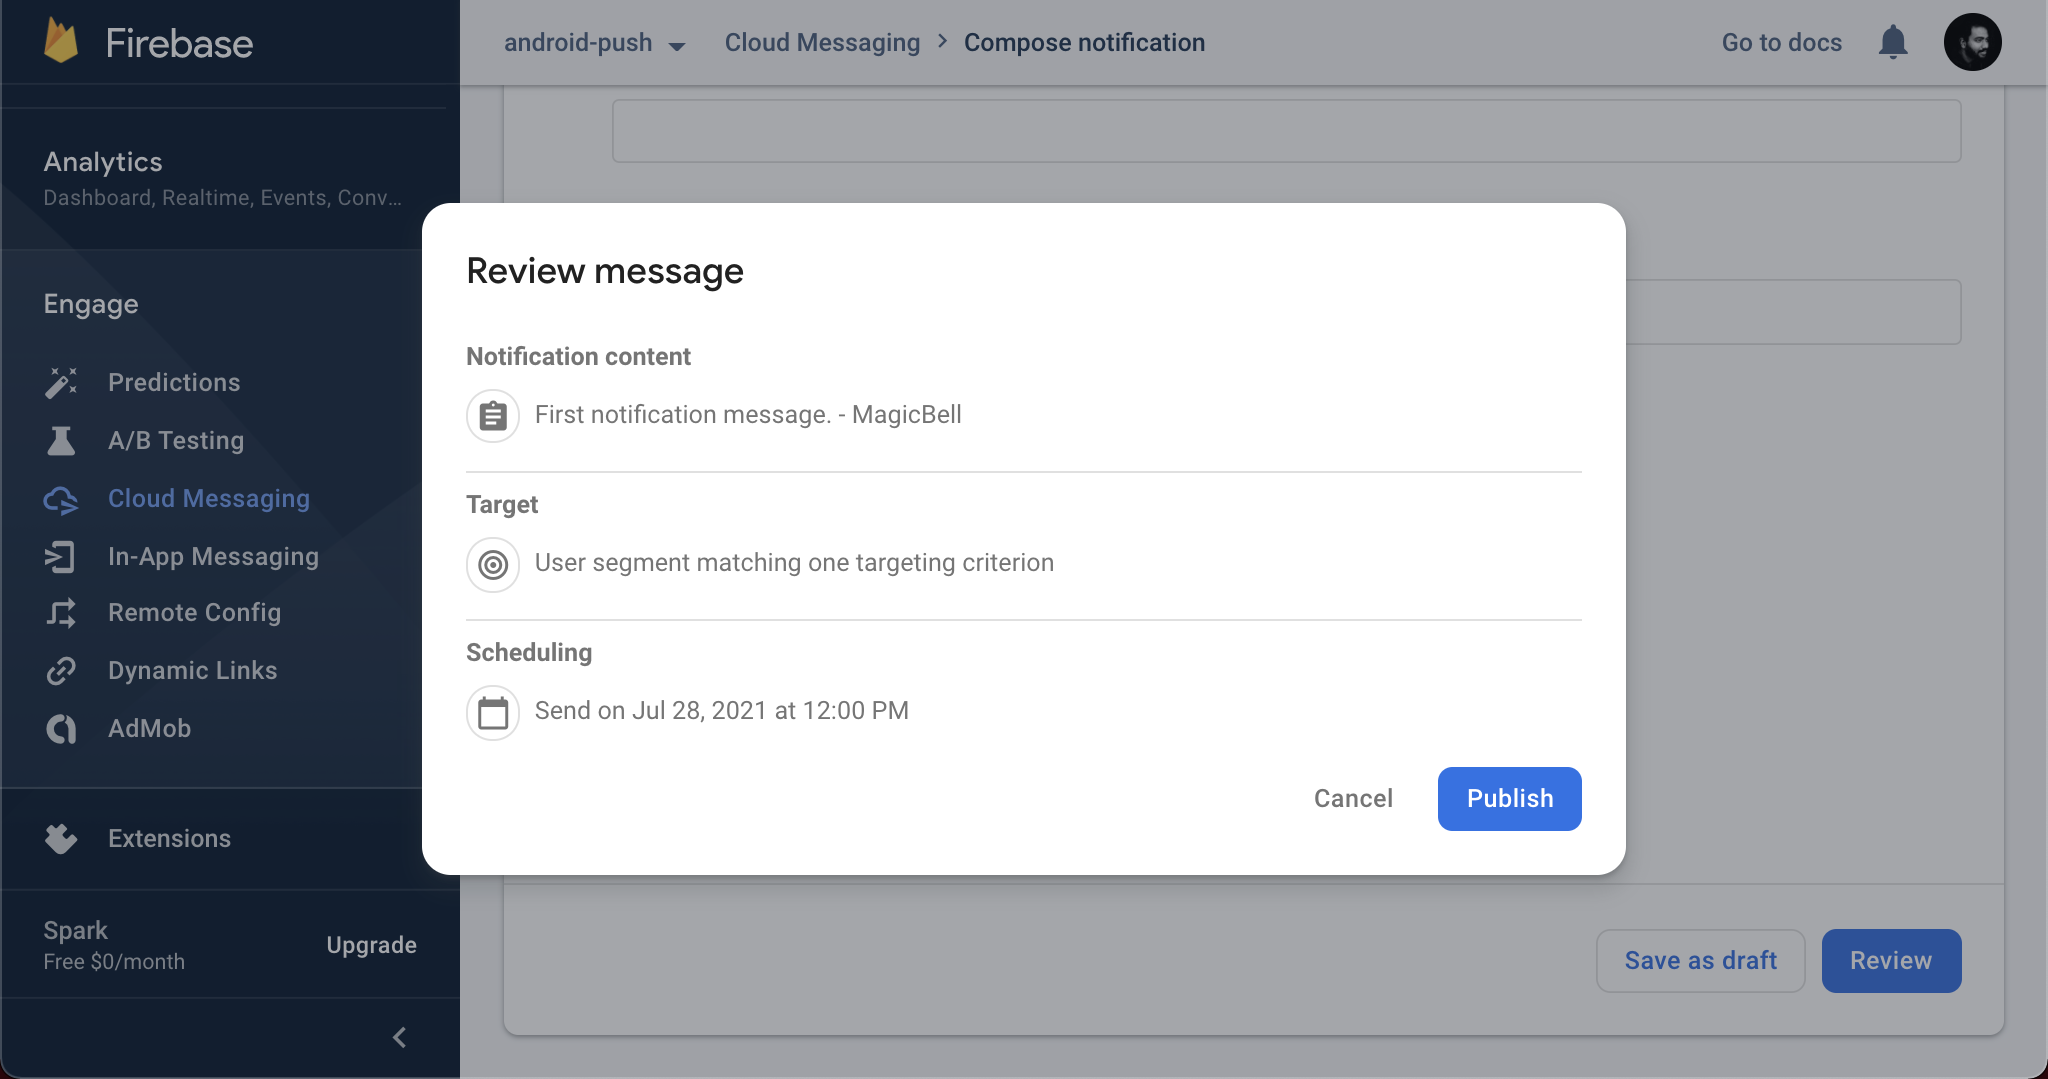 Review your message